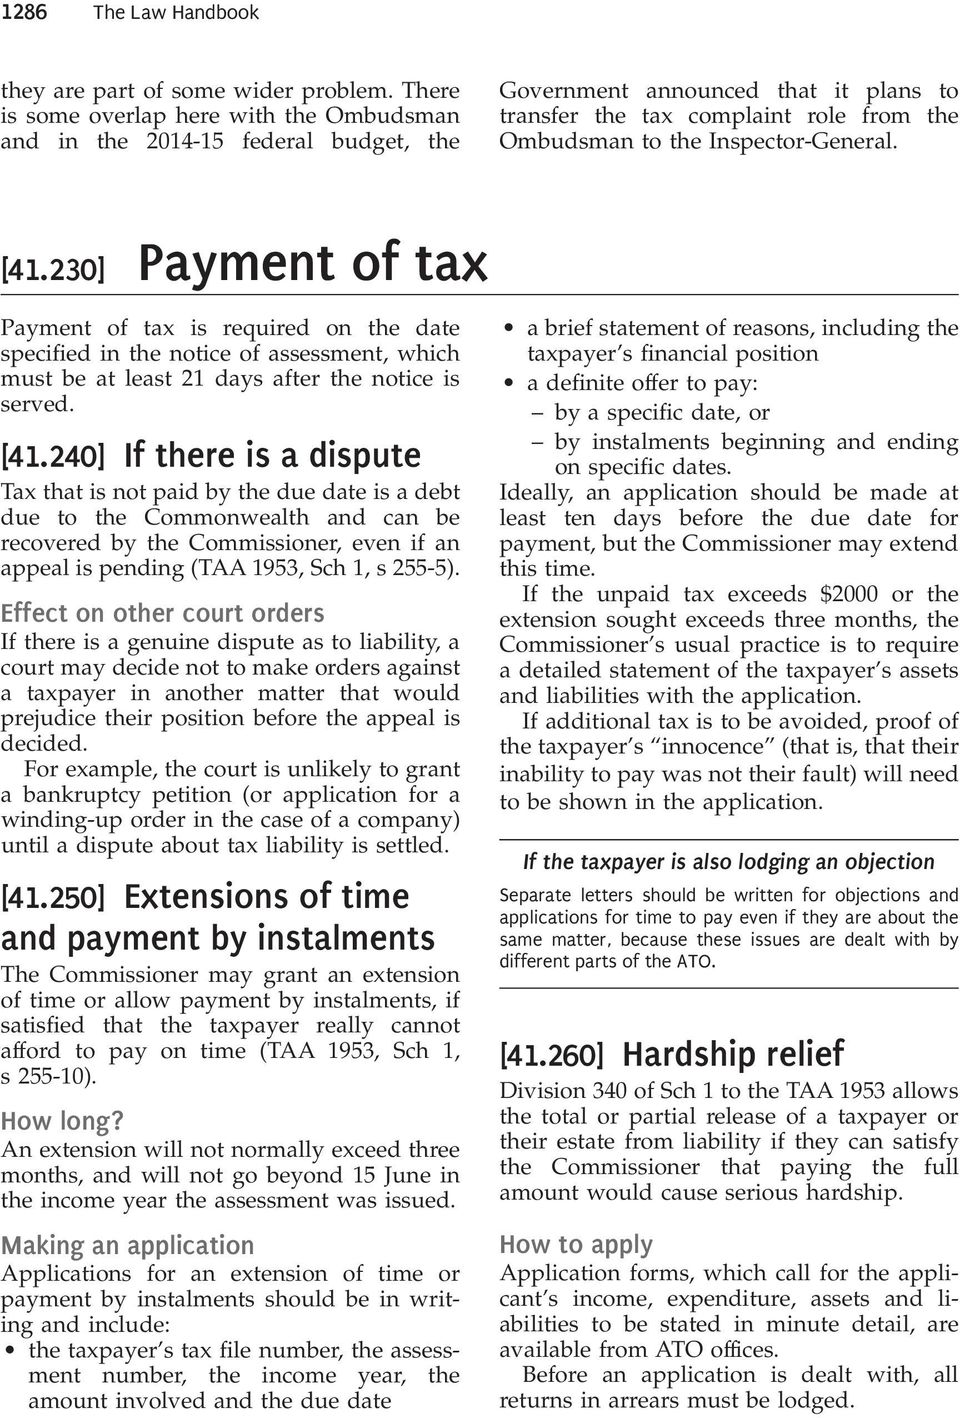 41230 payment of tax payment of tax is required on the date specified in